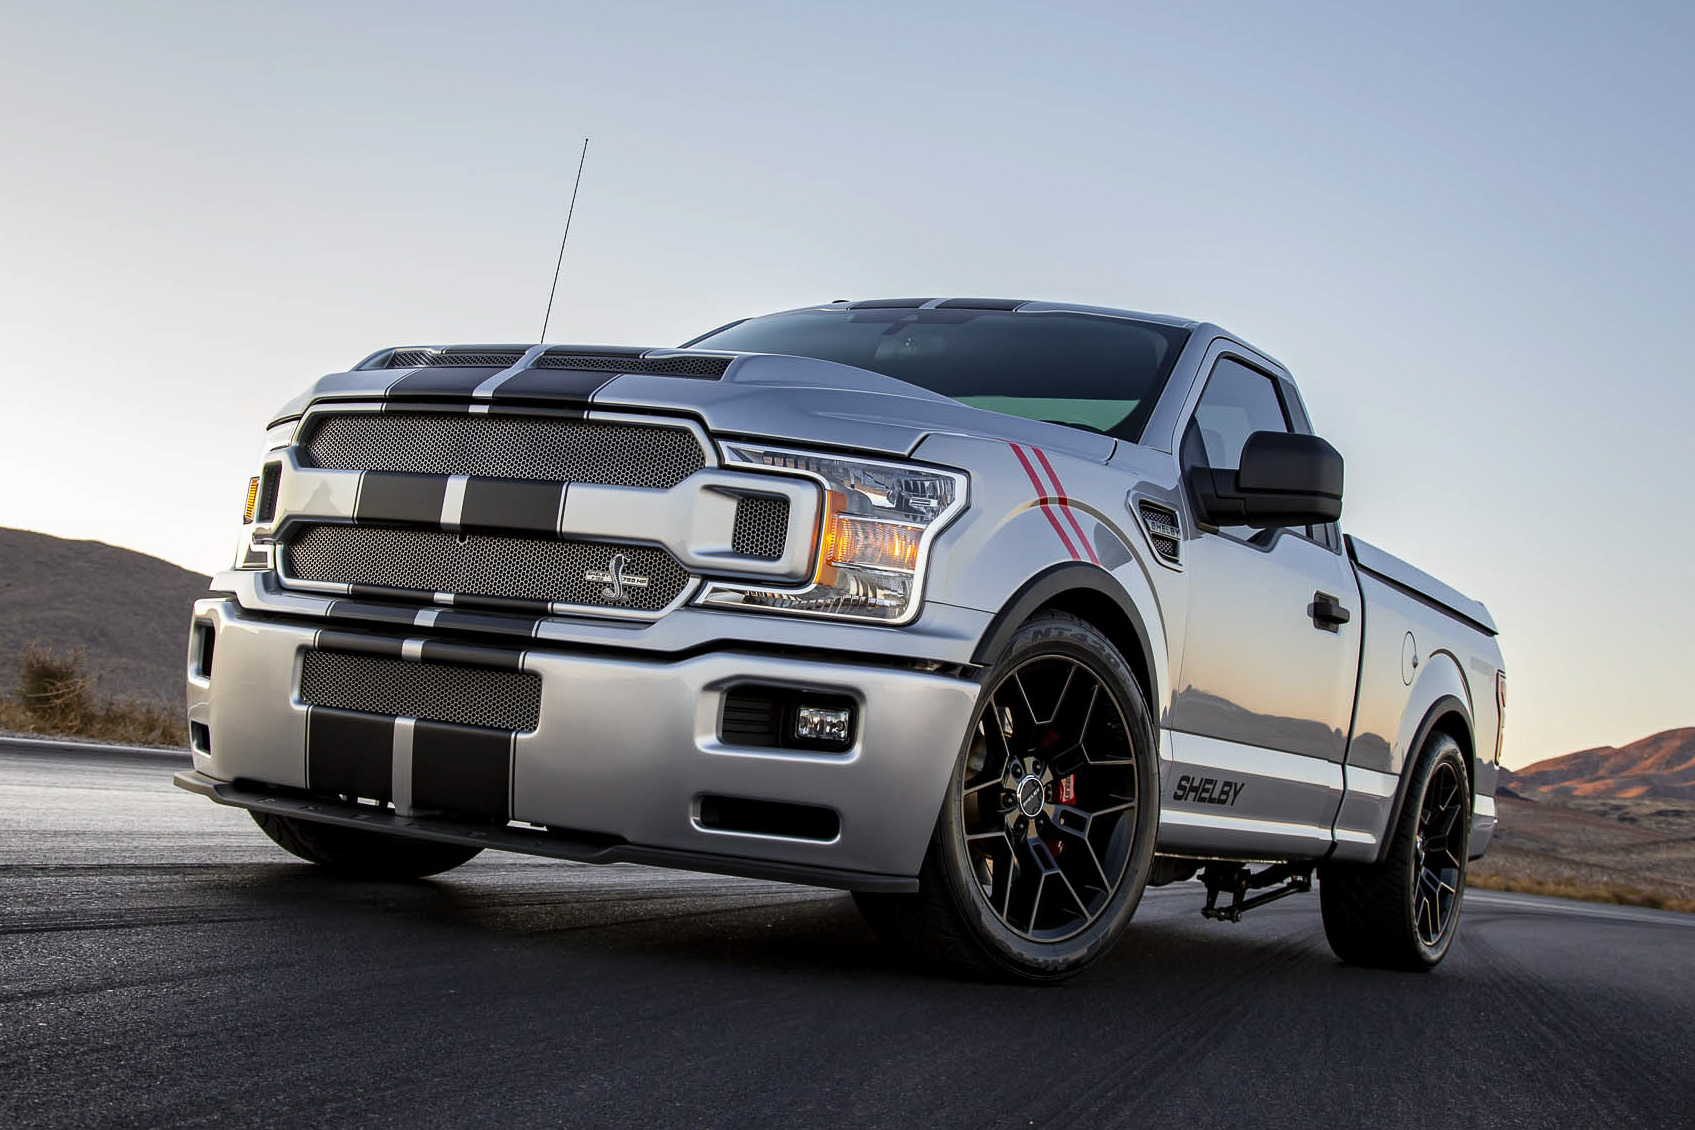 SHELBY F-150 Super Snake Sport coming to Australia